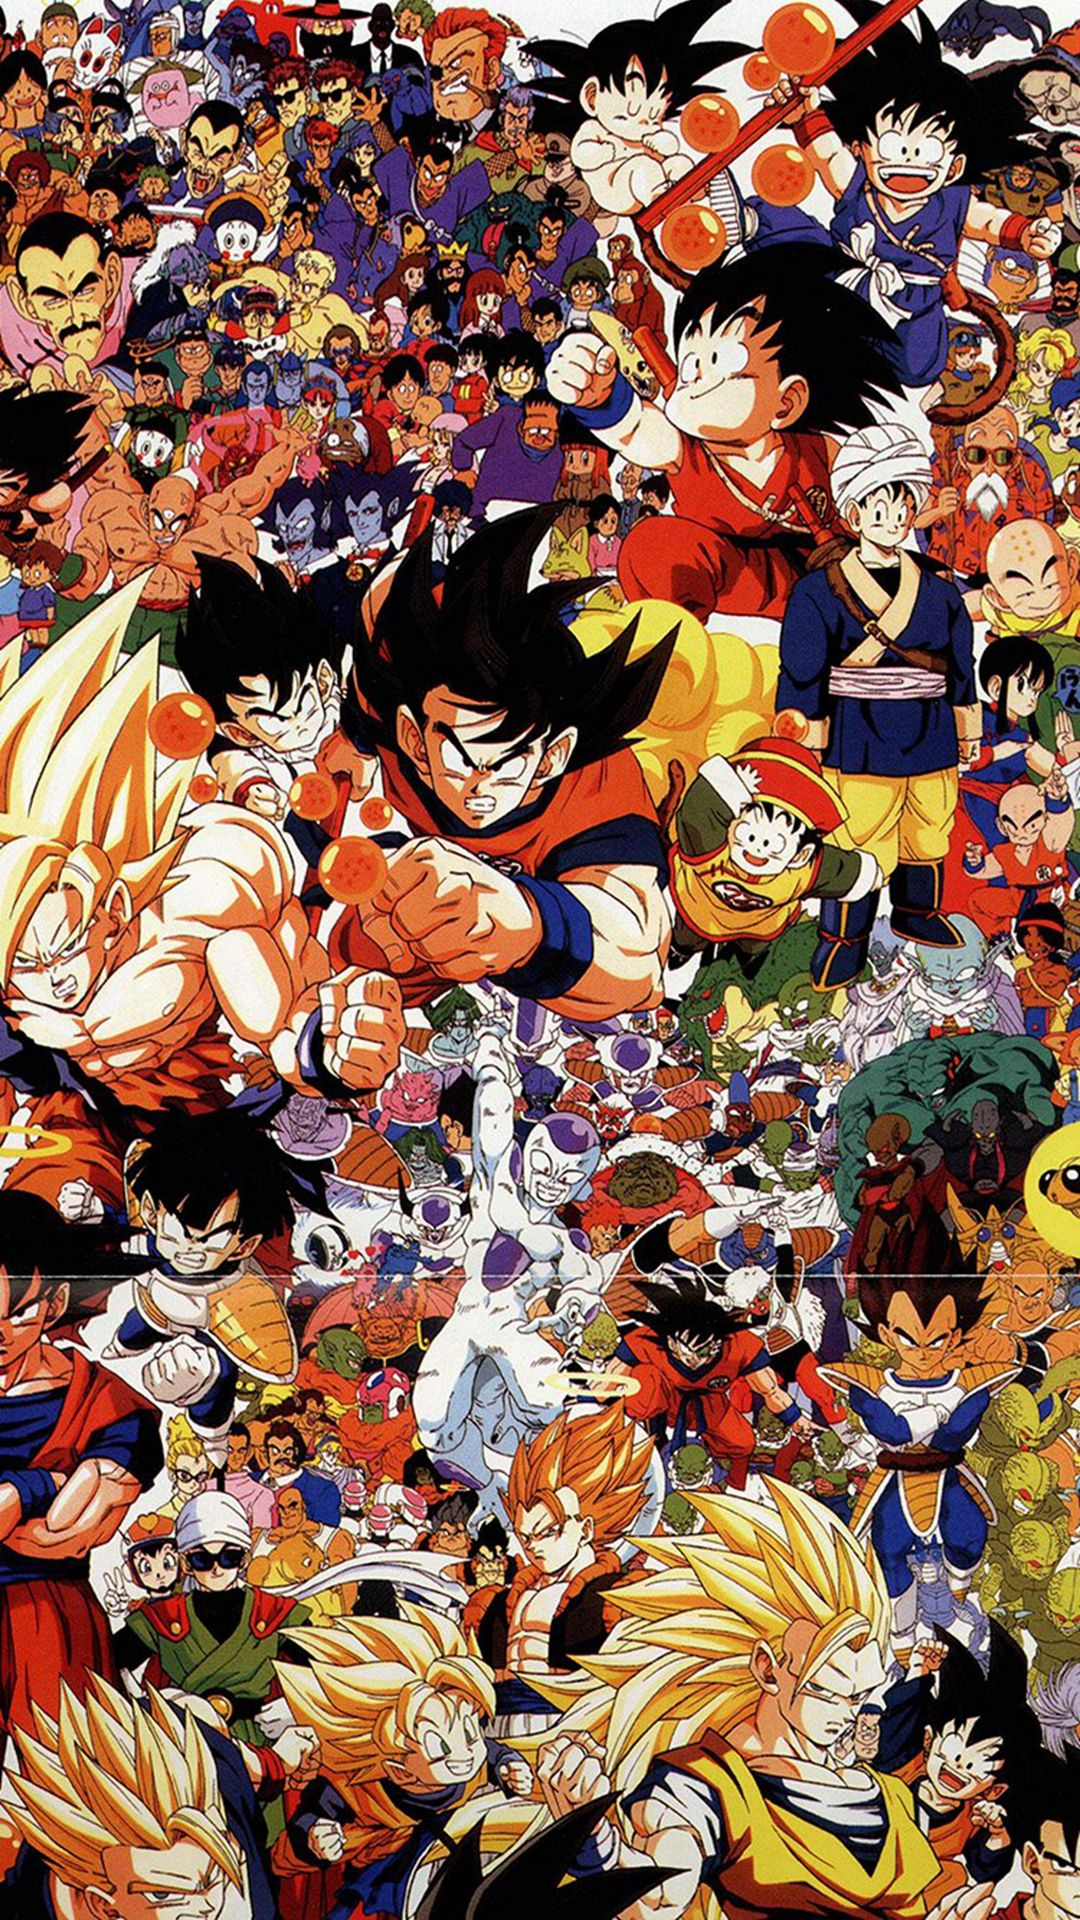 Dragonball Full Art Illust Game Anime Iphone 6 Wallpaper   Iphone 1080x1920